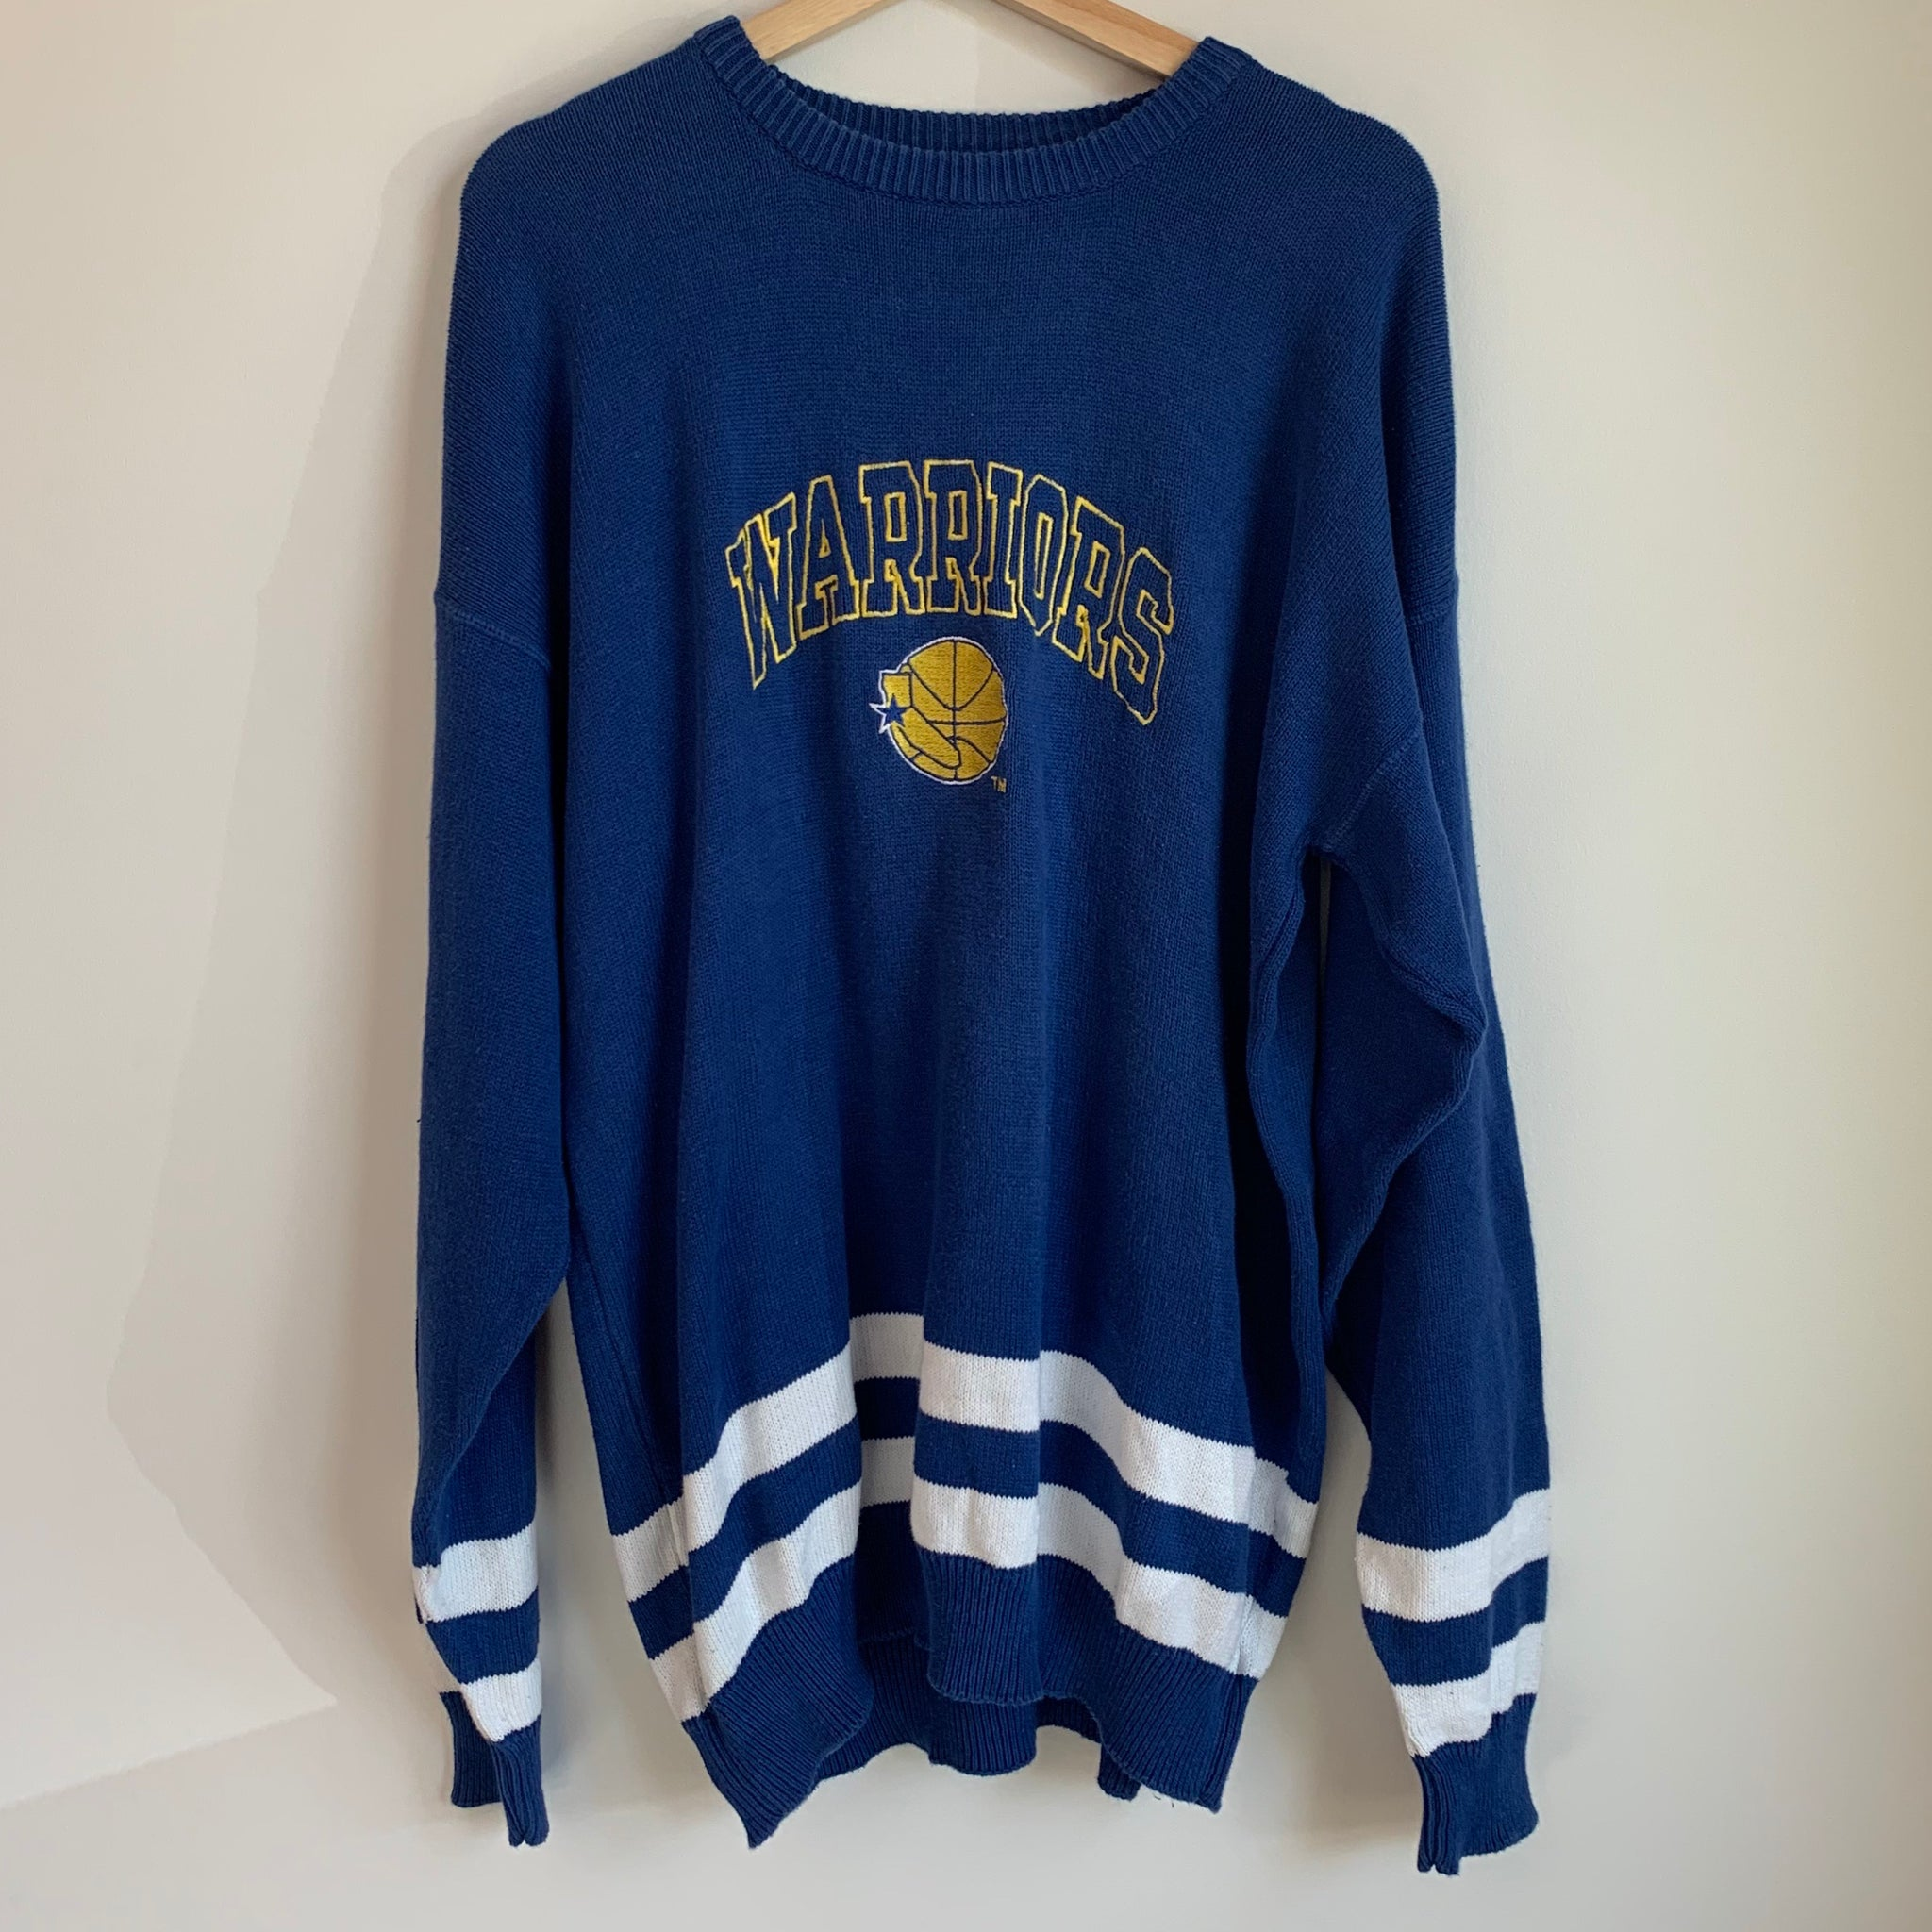 Logo 7 Golden State Warriors Blue Knit Sweater